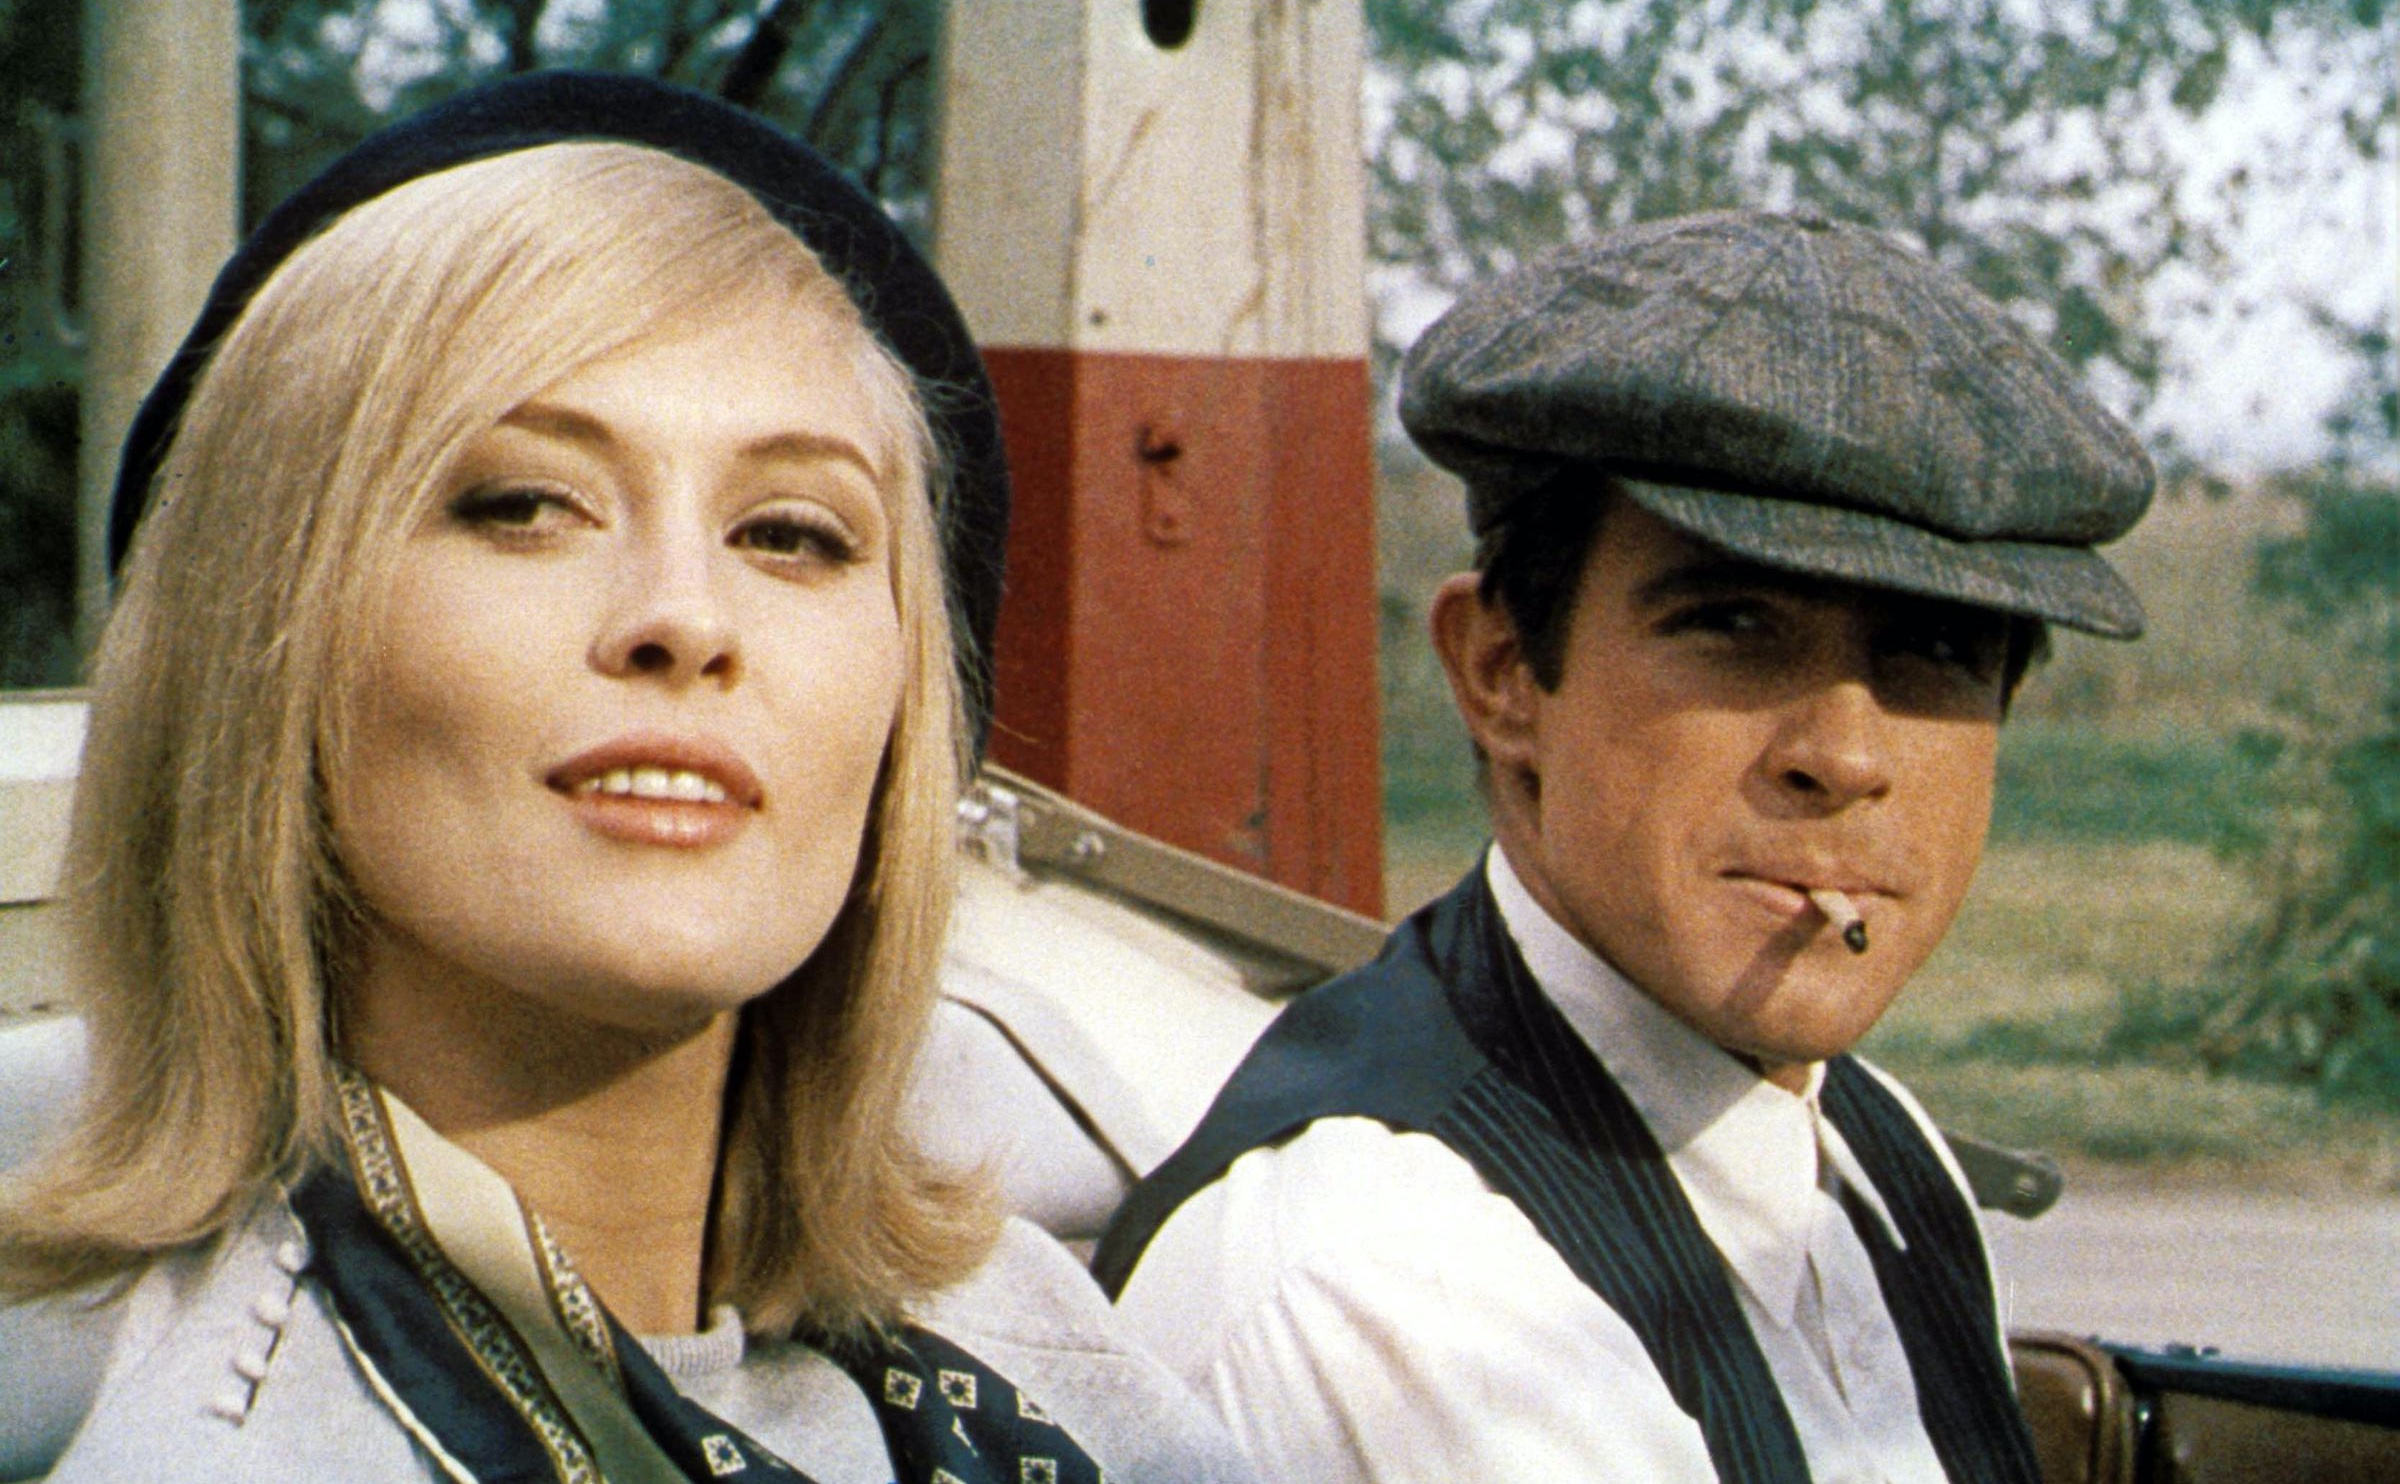 Bonnie and Clyde (1967) by Arthur Penn